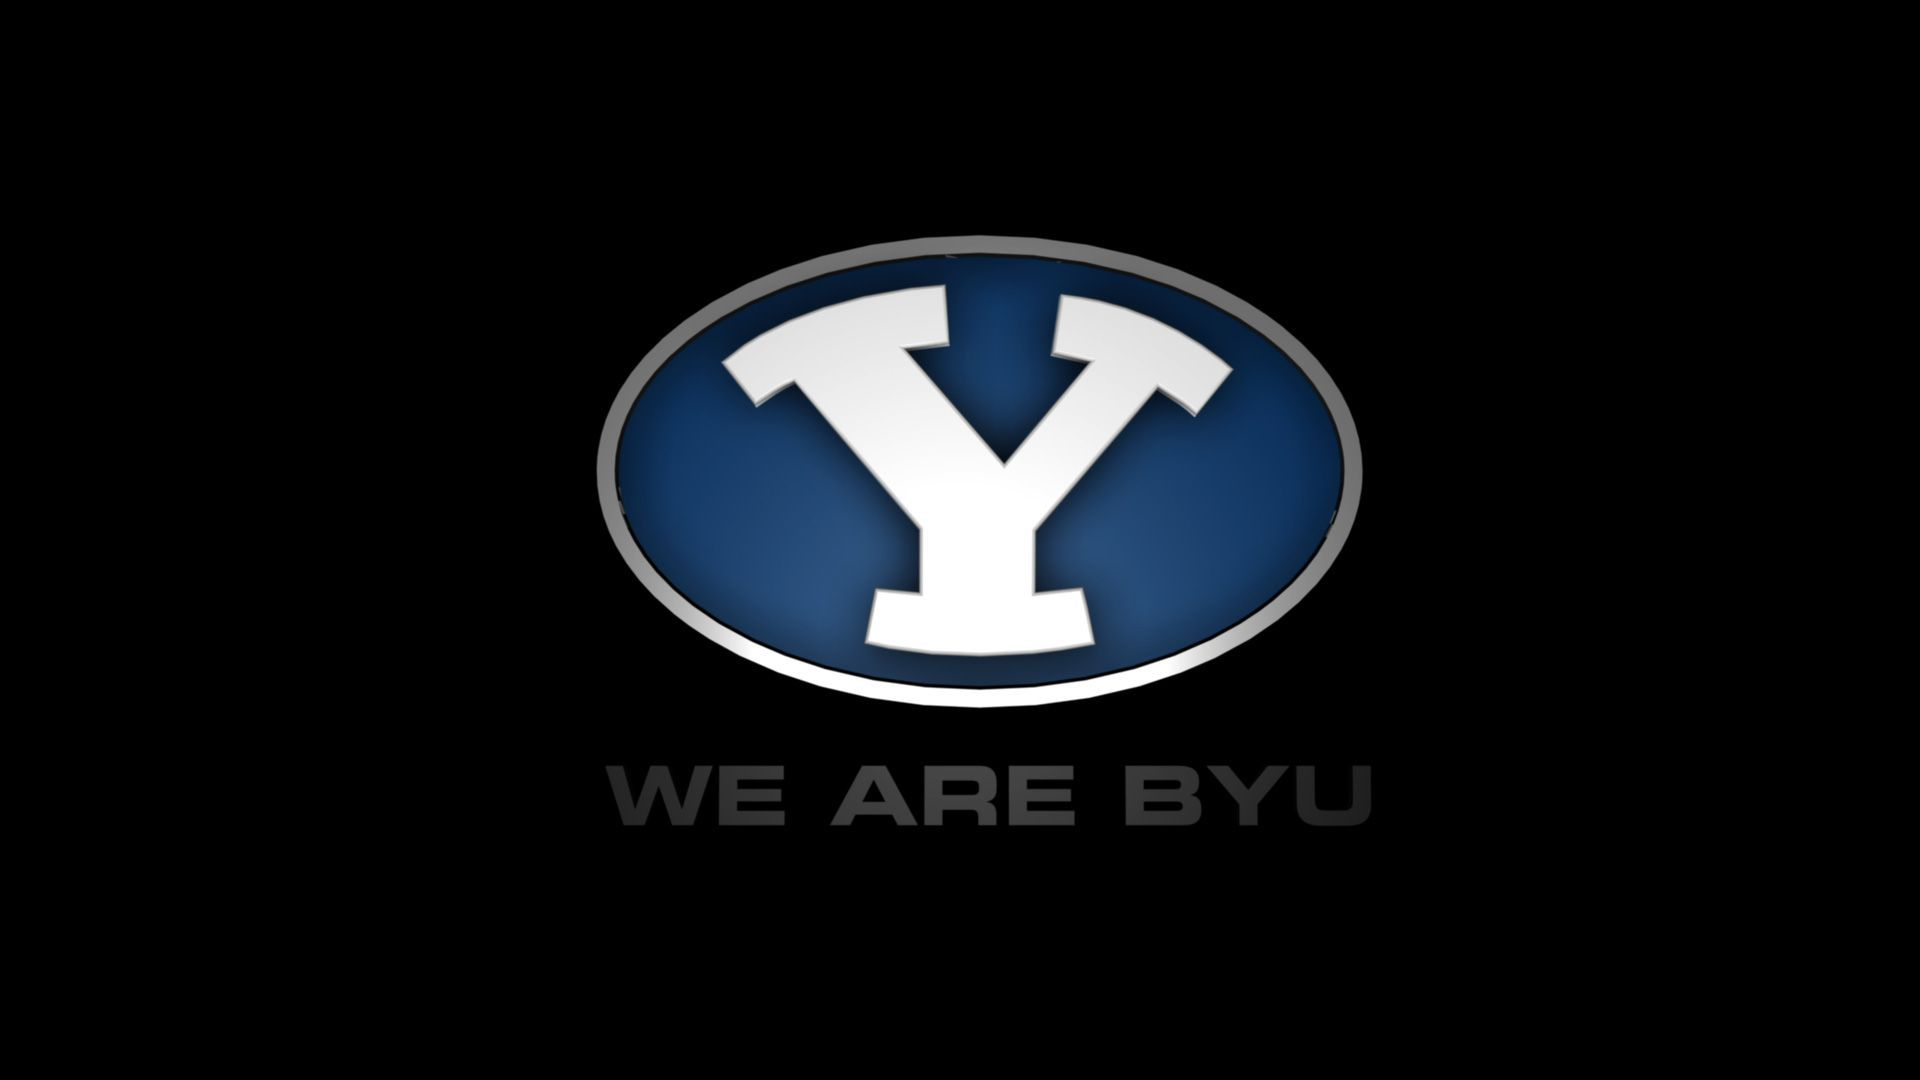 Byu Backgrounds Wallpaper Cave Byu Byu Football Swimming Pools